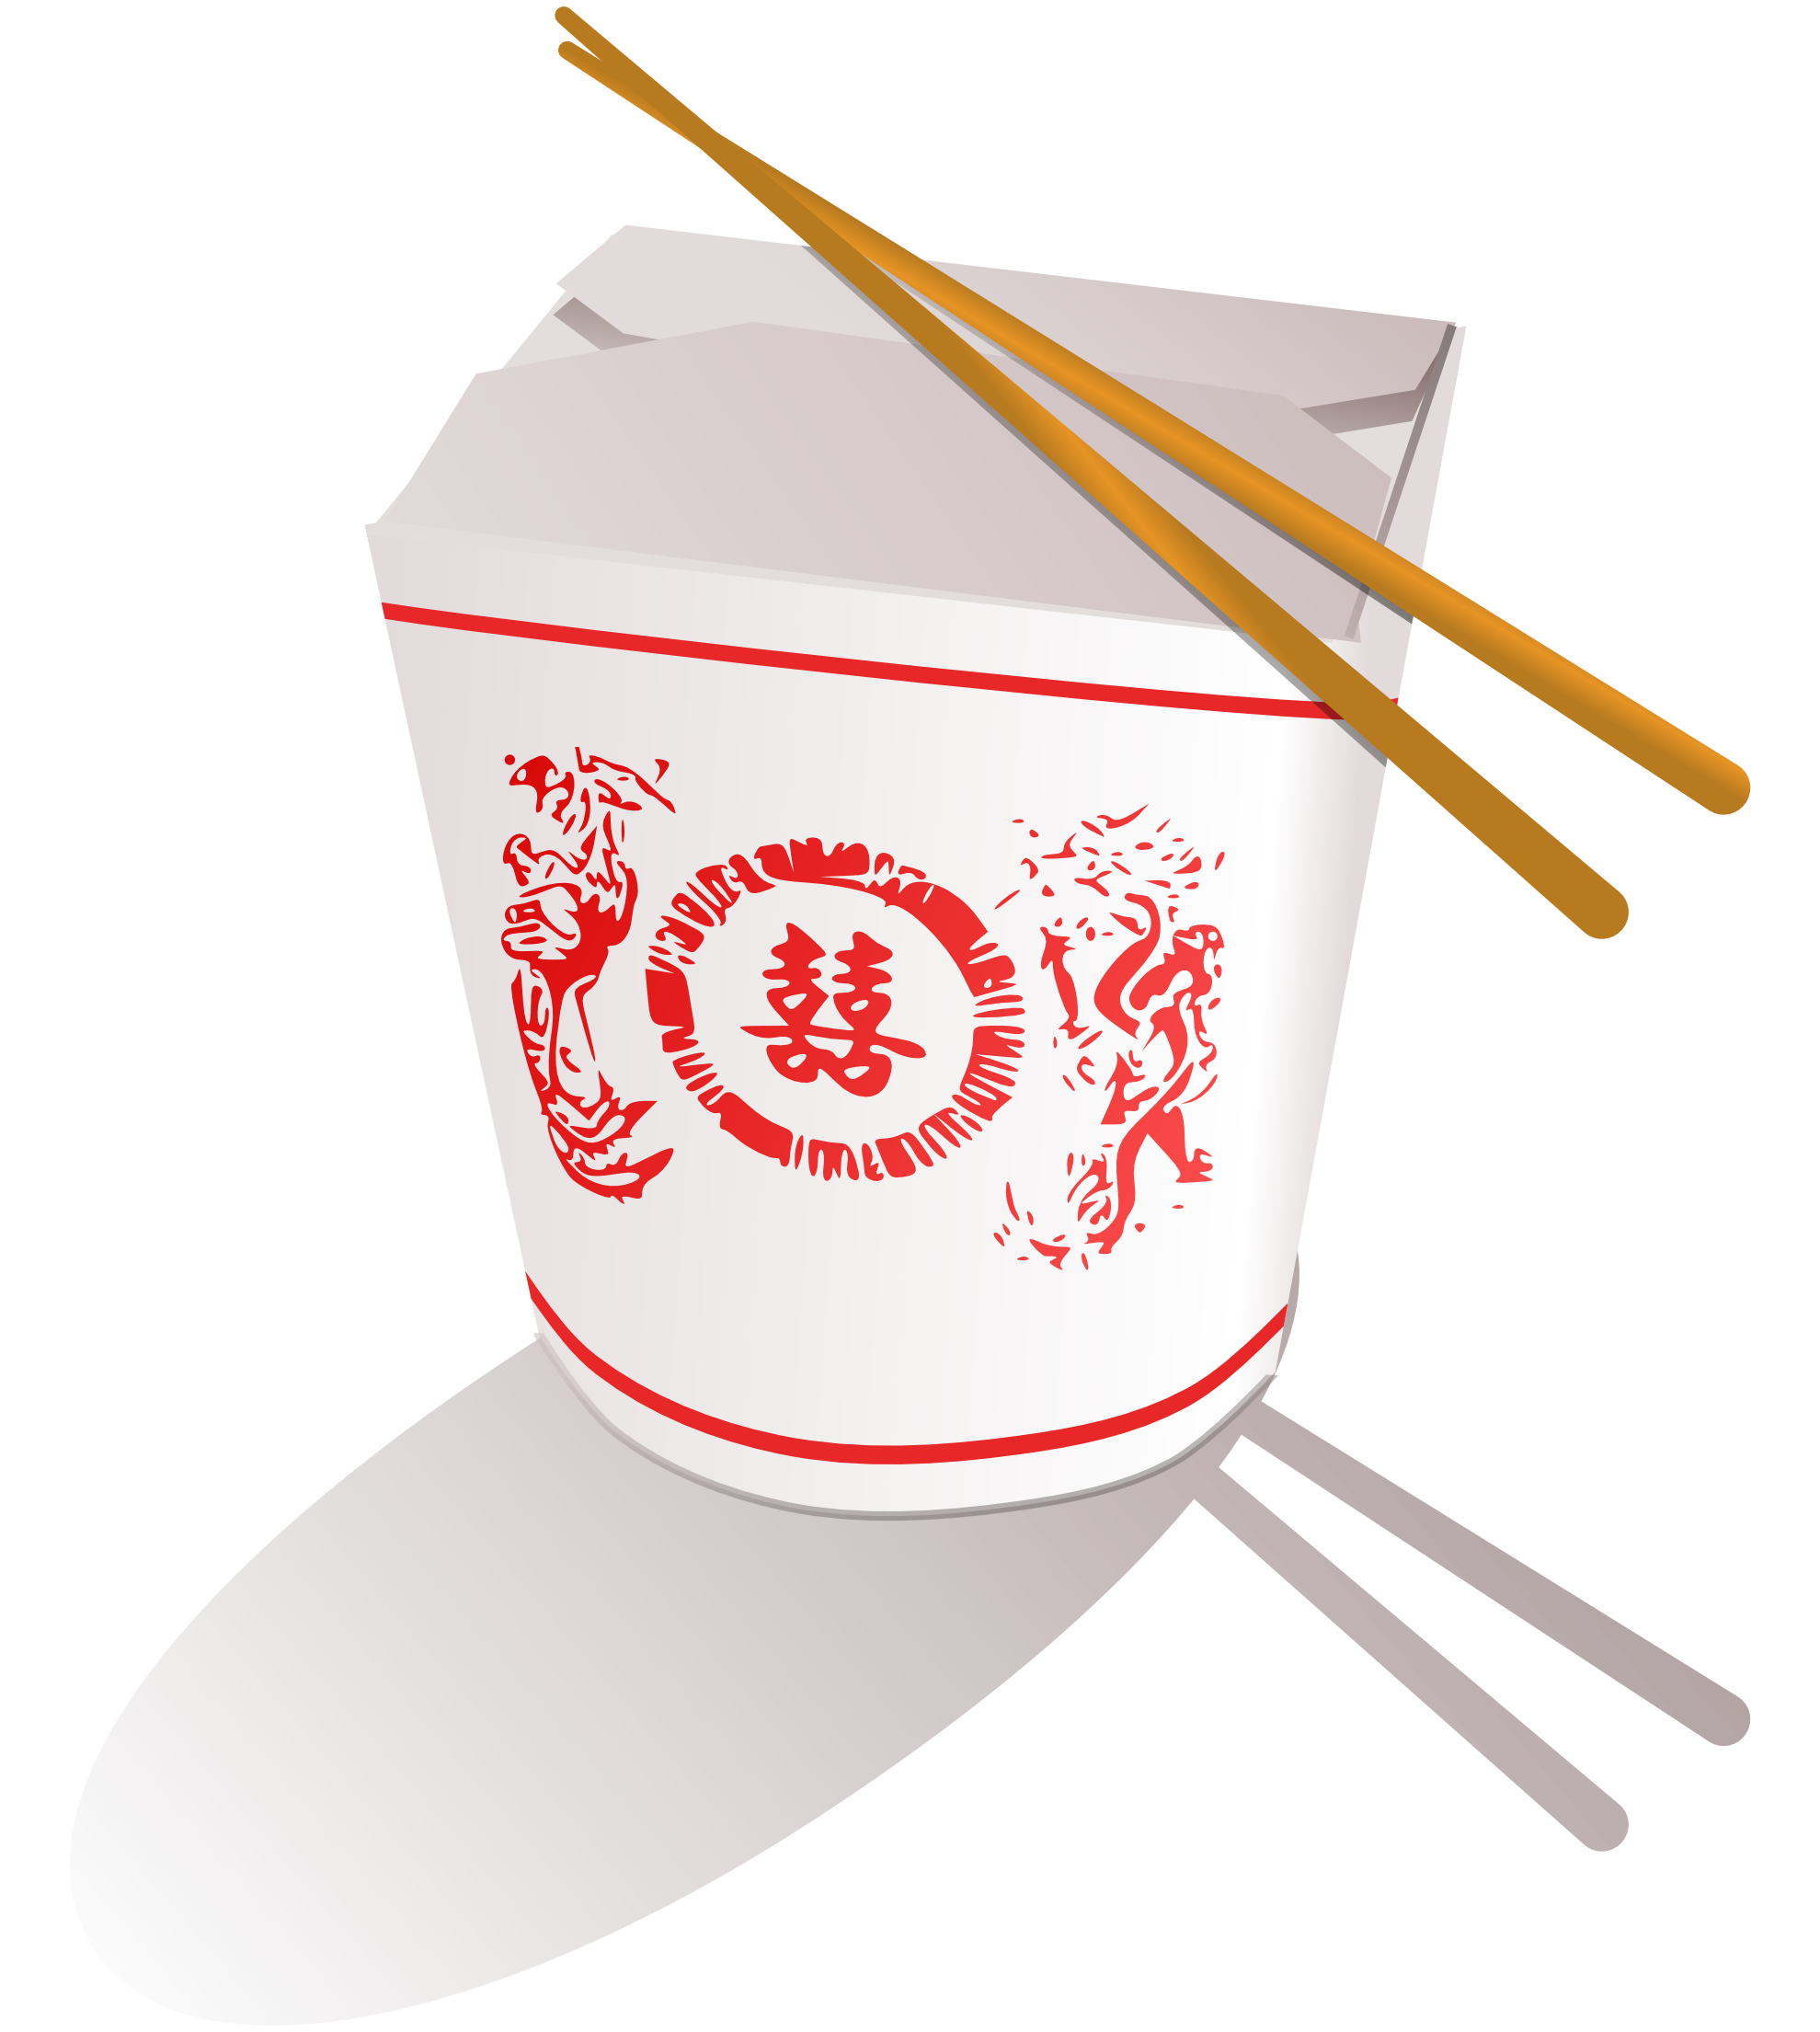 Asian house clipart clipart transparent library Images of Chinese Food Logo Png - #SpaceHero clipart transparent library